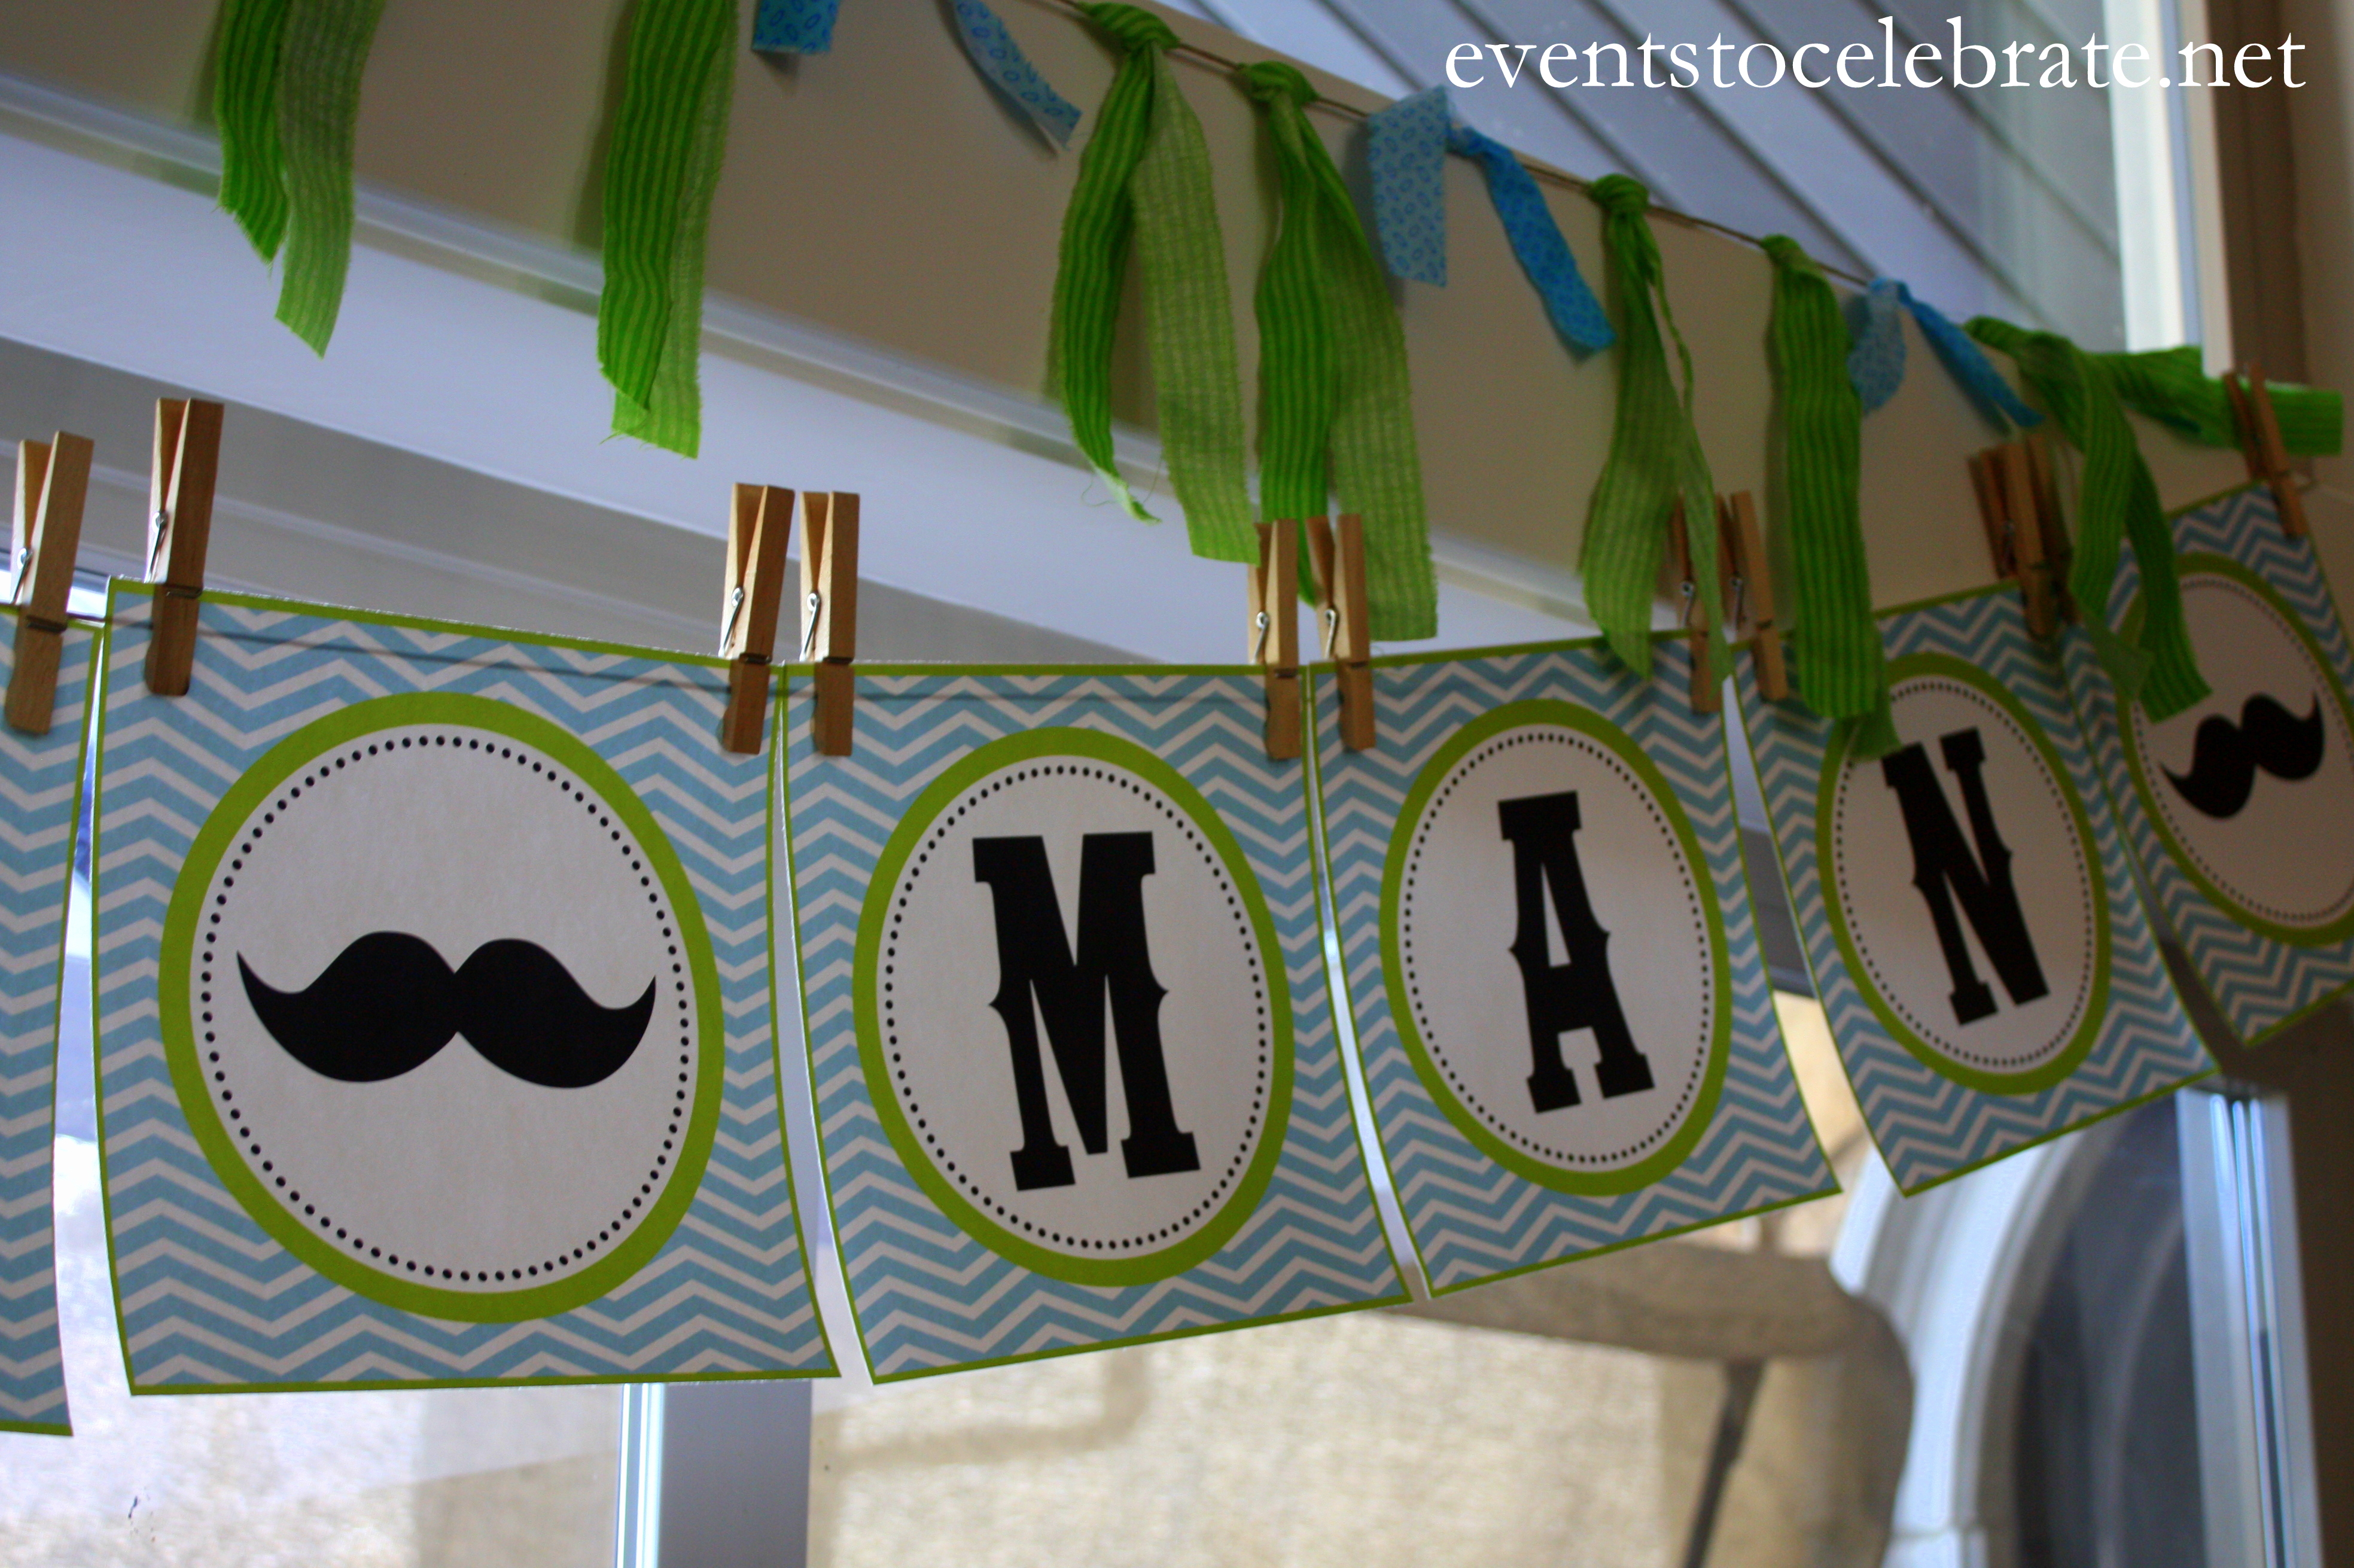 little man mustache baby shower events to celebrate